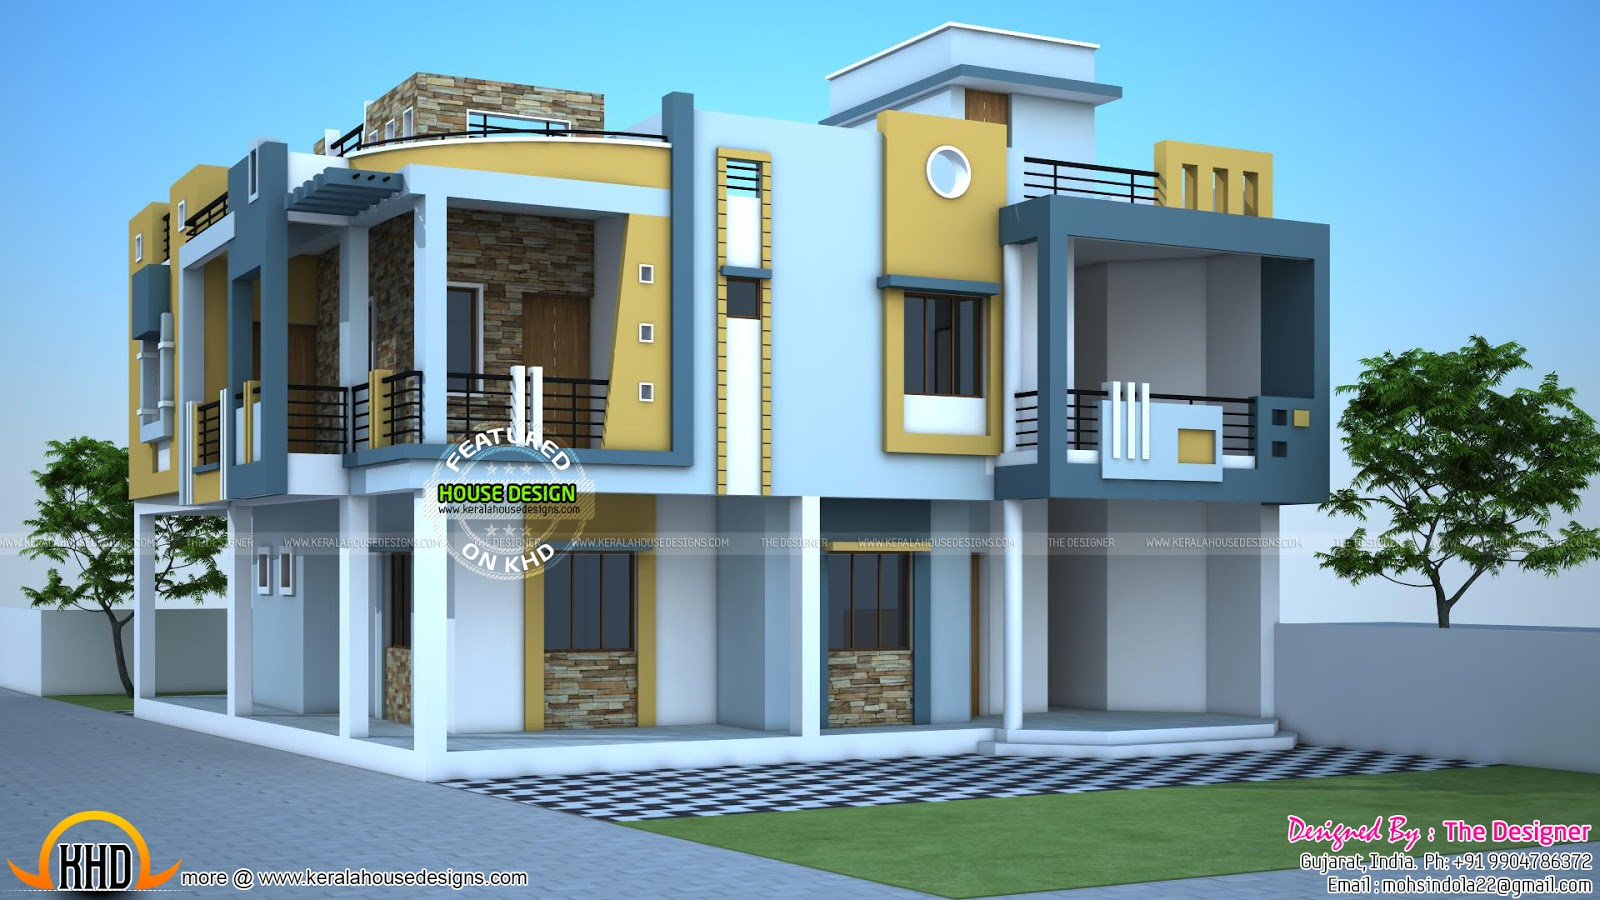 Modern duplex house in india kerala home design and for Modern duplex house designs